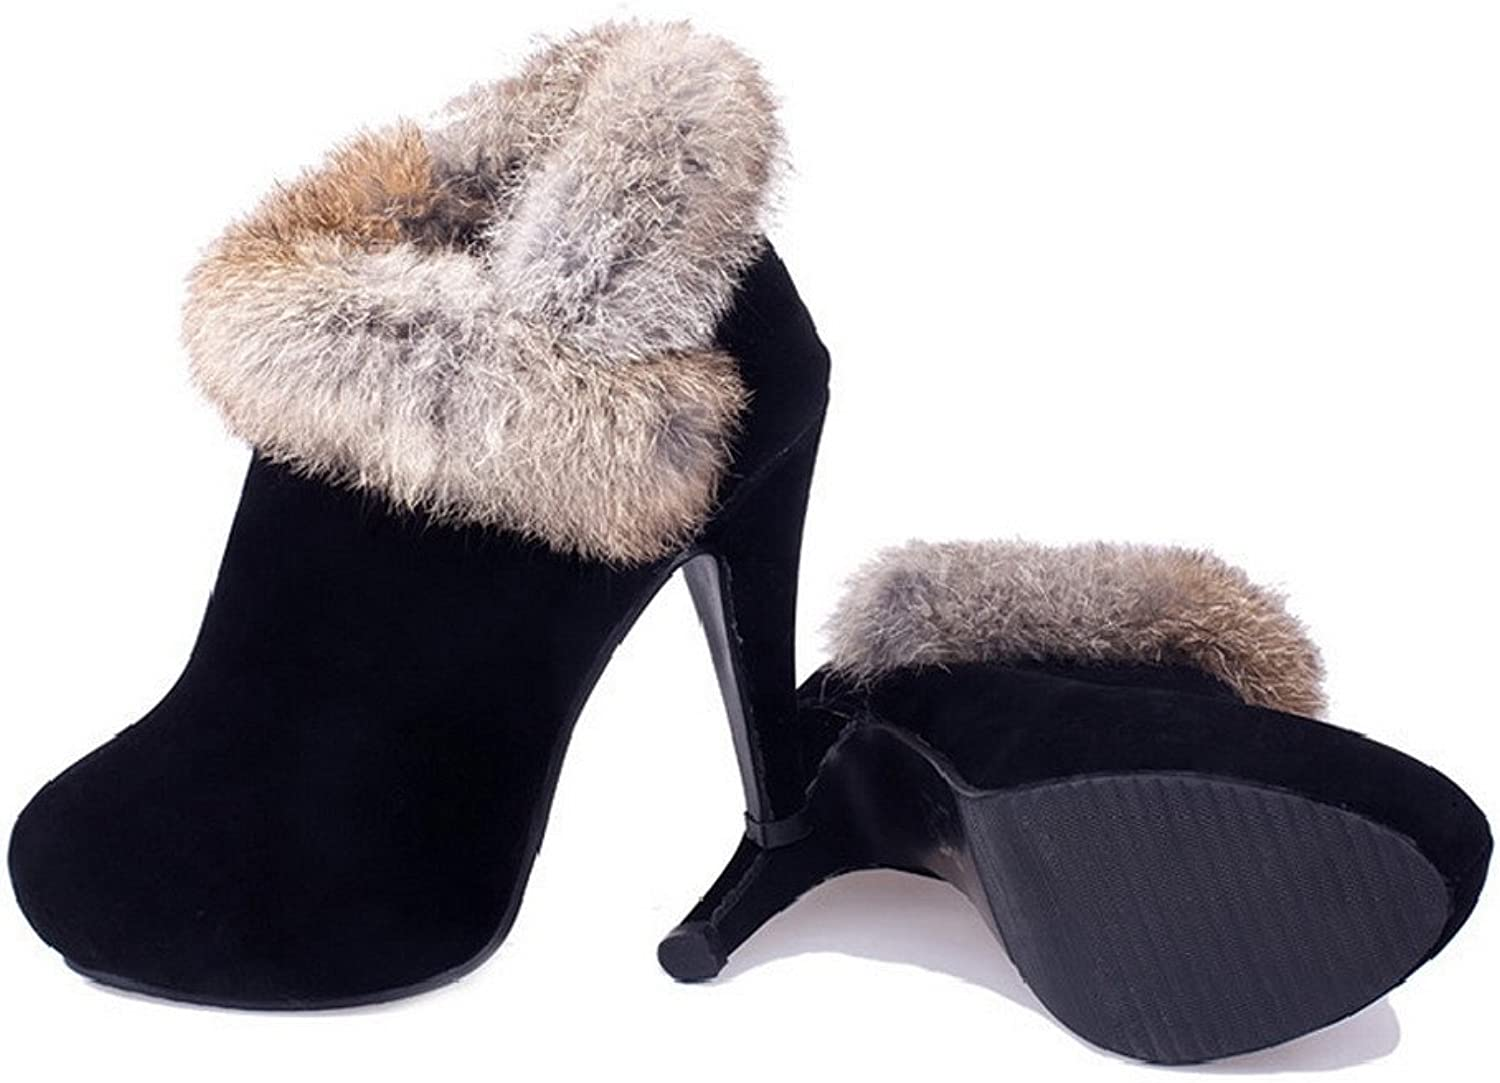 QueenFashion Women's Platform Fur Ornament Cone Heels Frosting Ankle Boots with Zipper